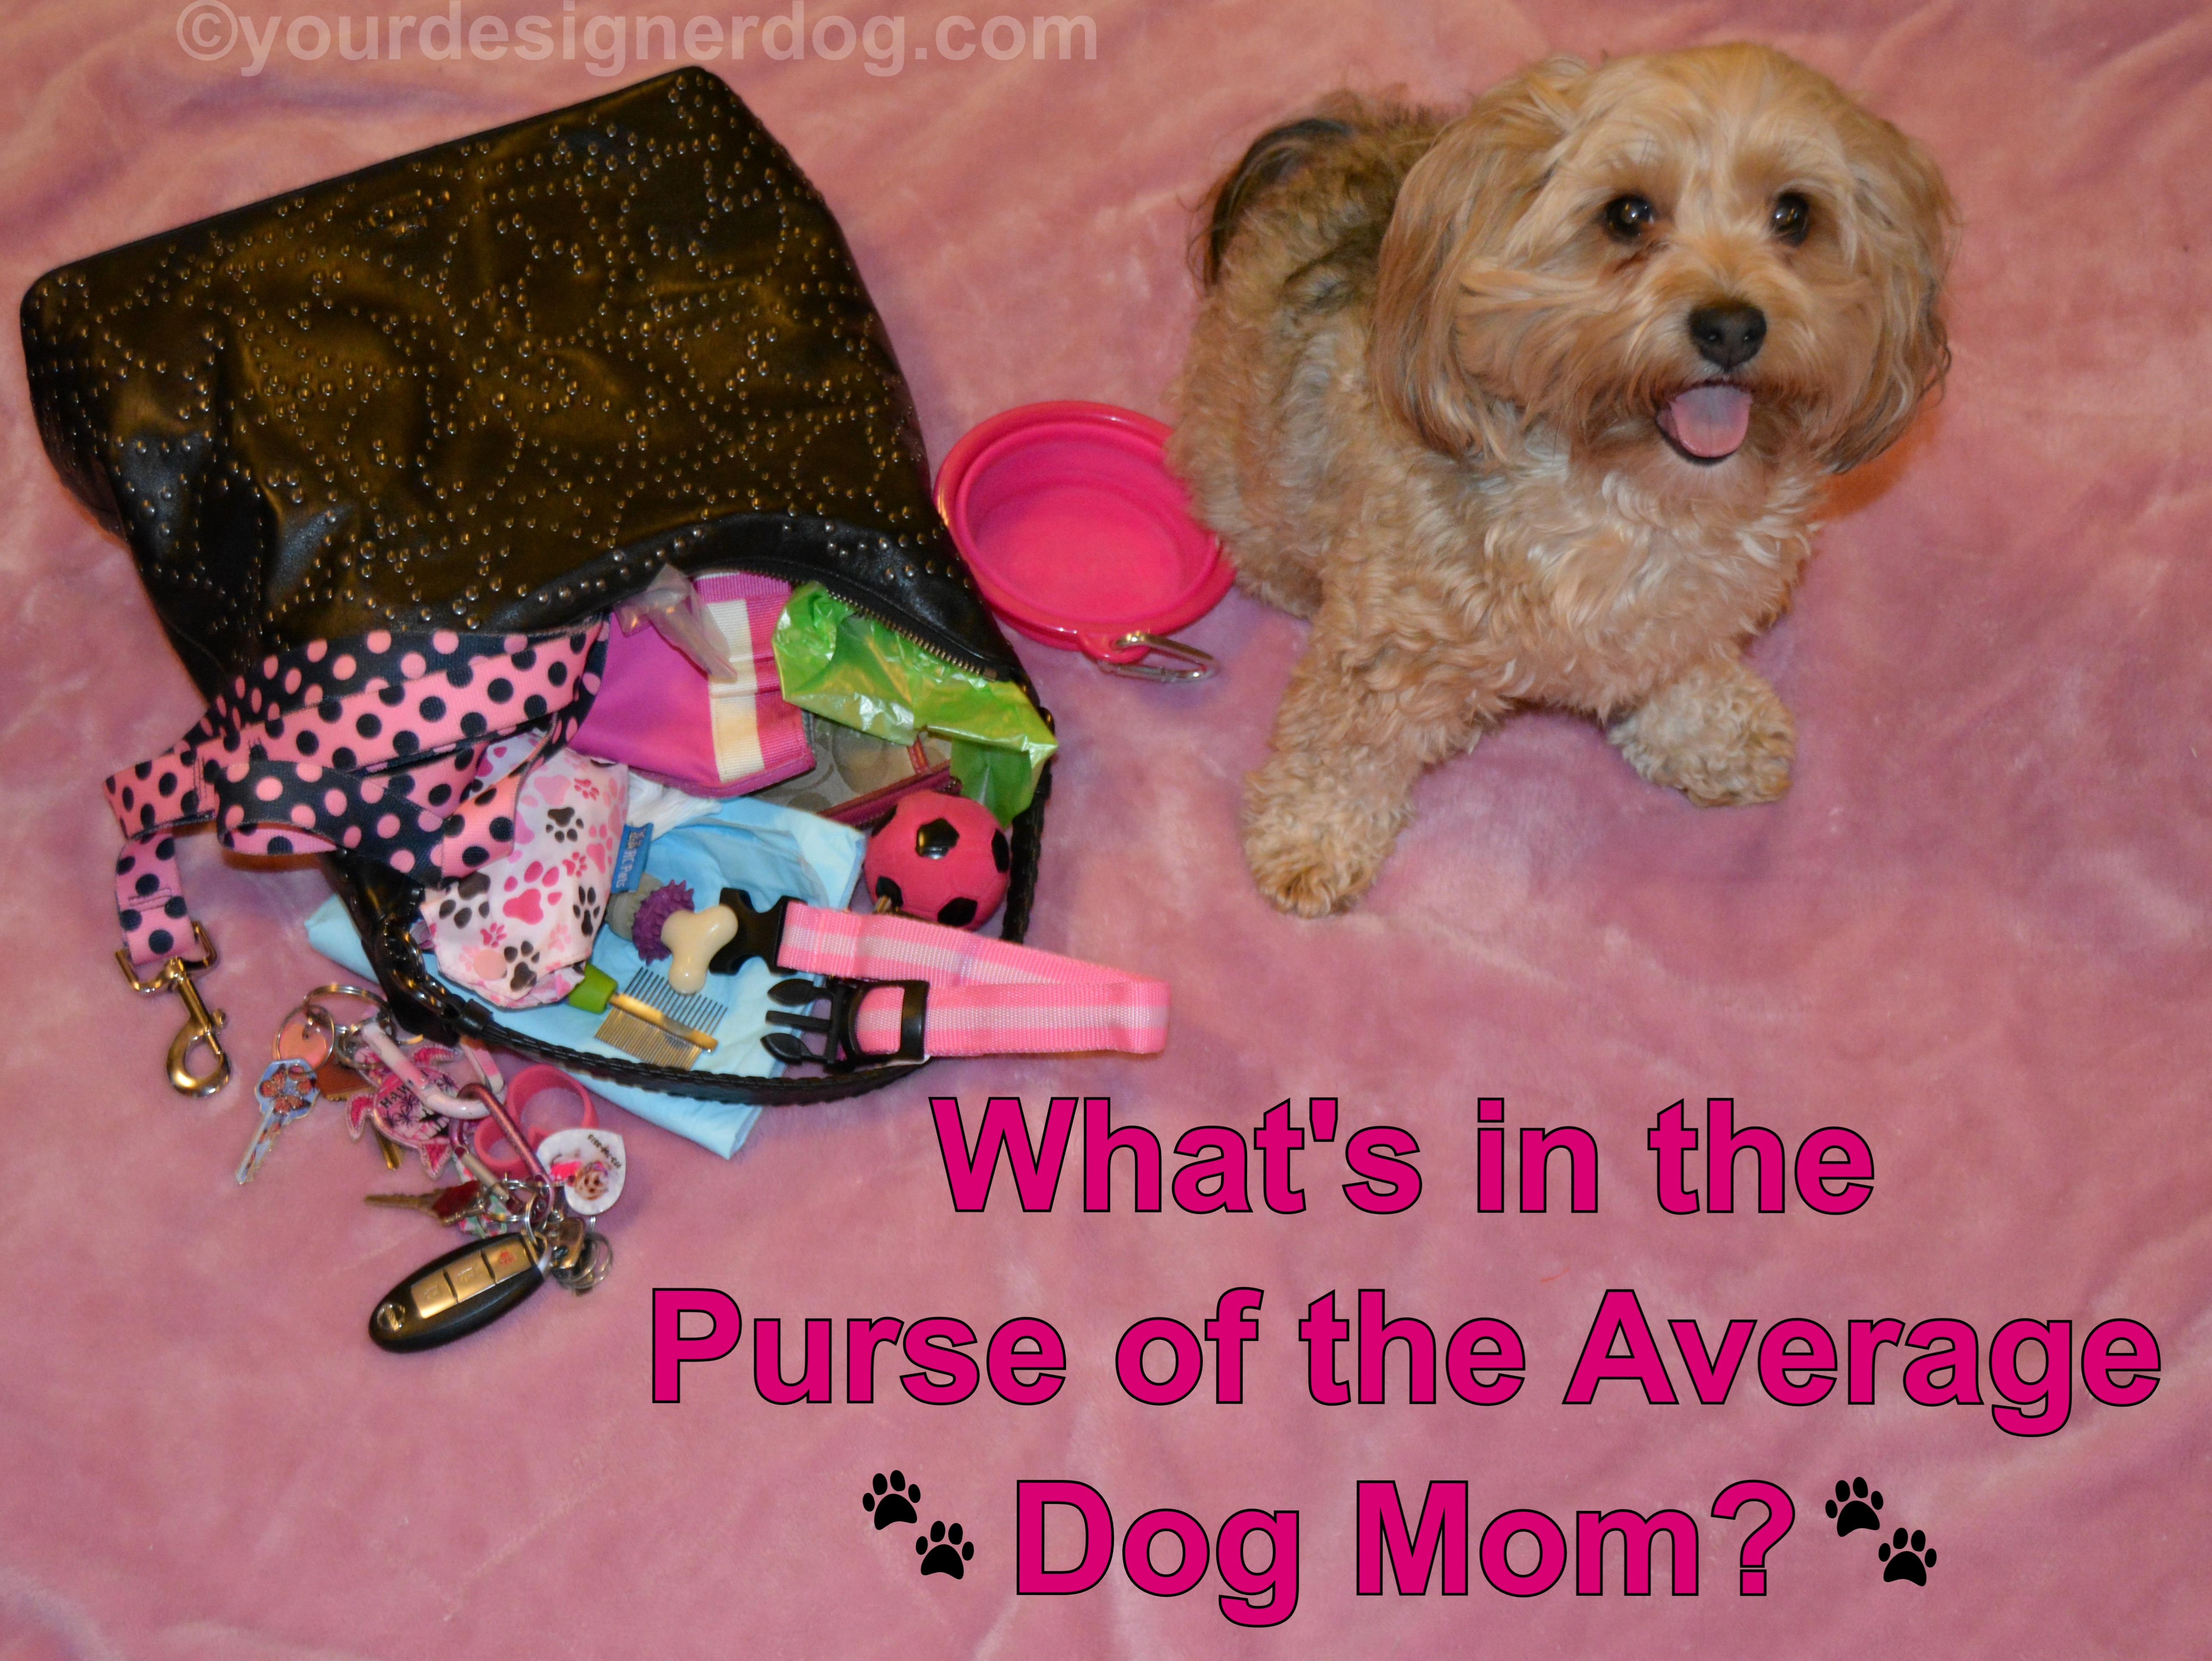 Inside the Purse of a Dog Mom